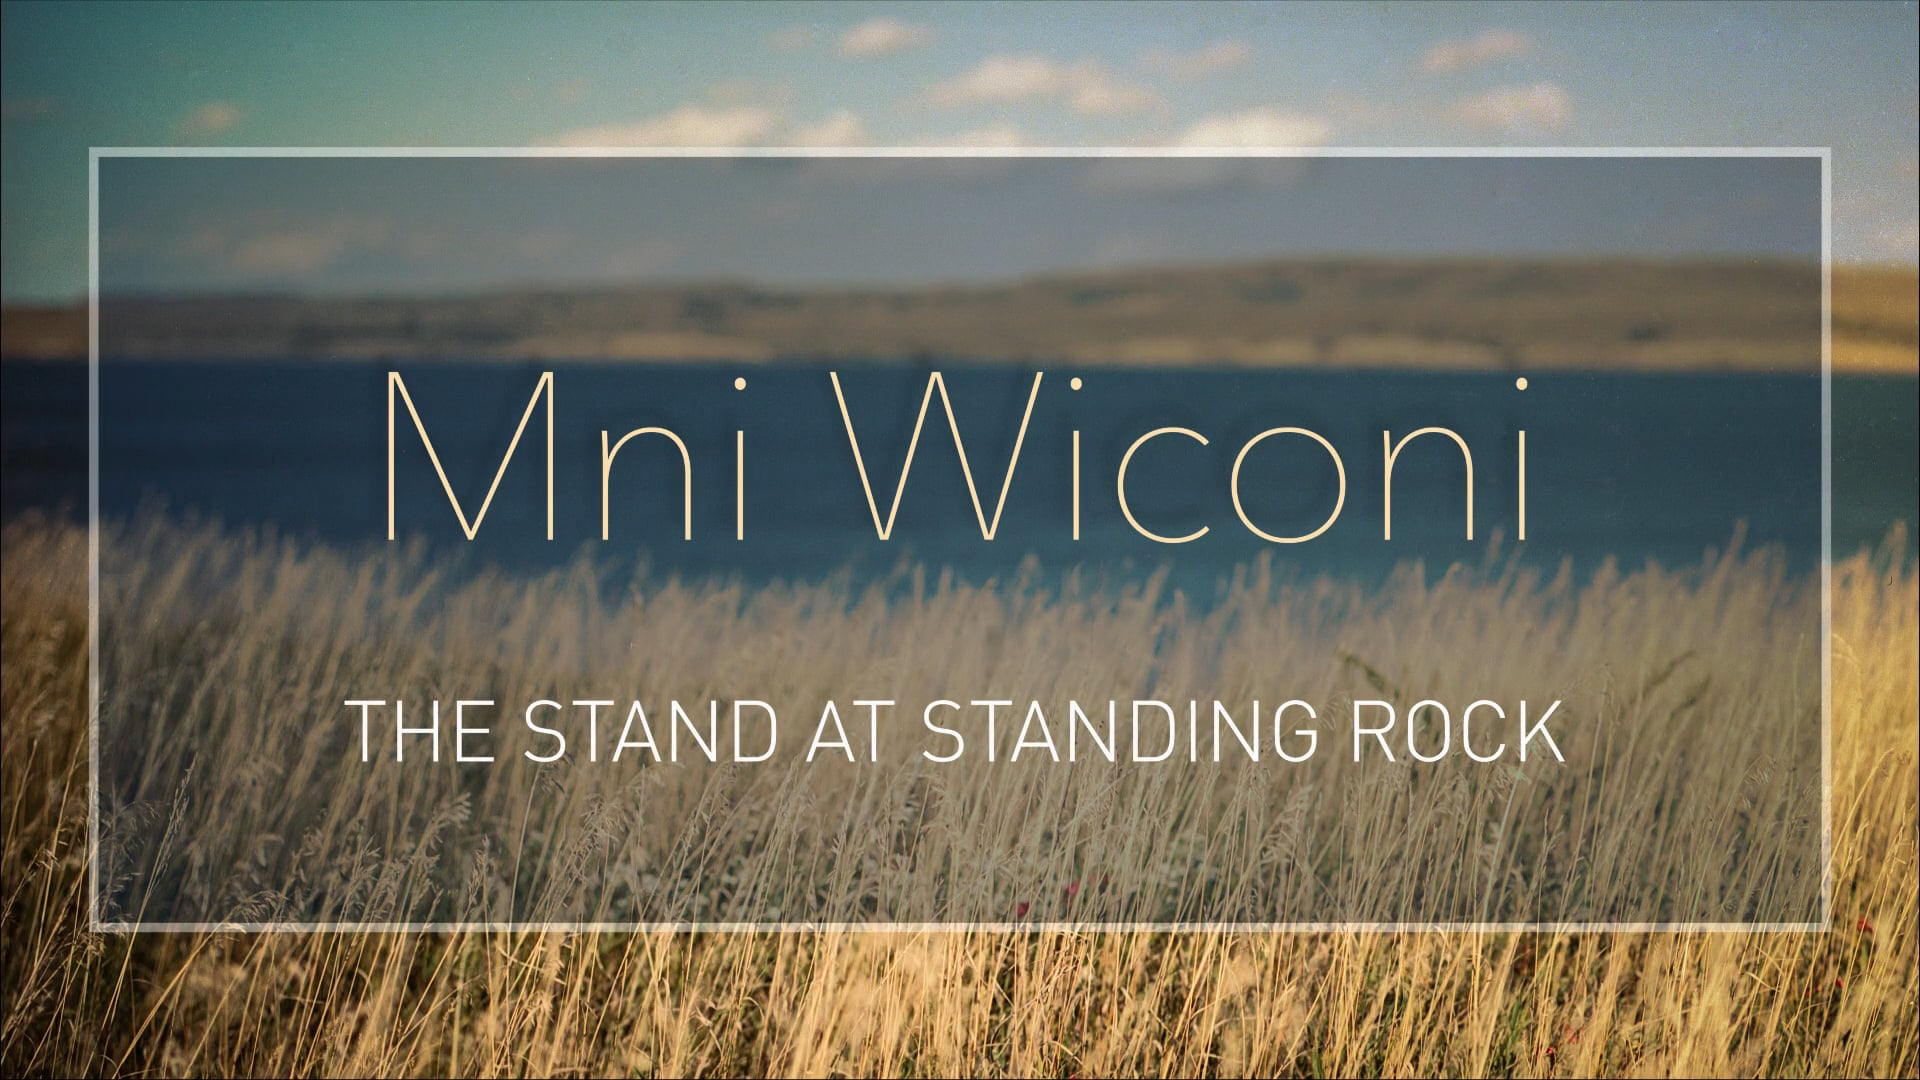 Mni Wiconi - The Stand at Standing Rock